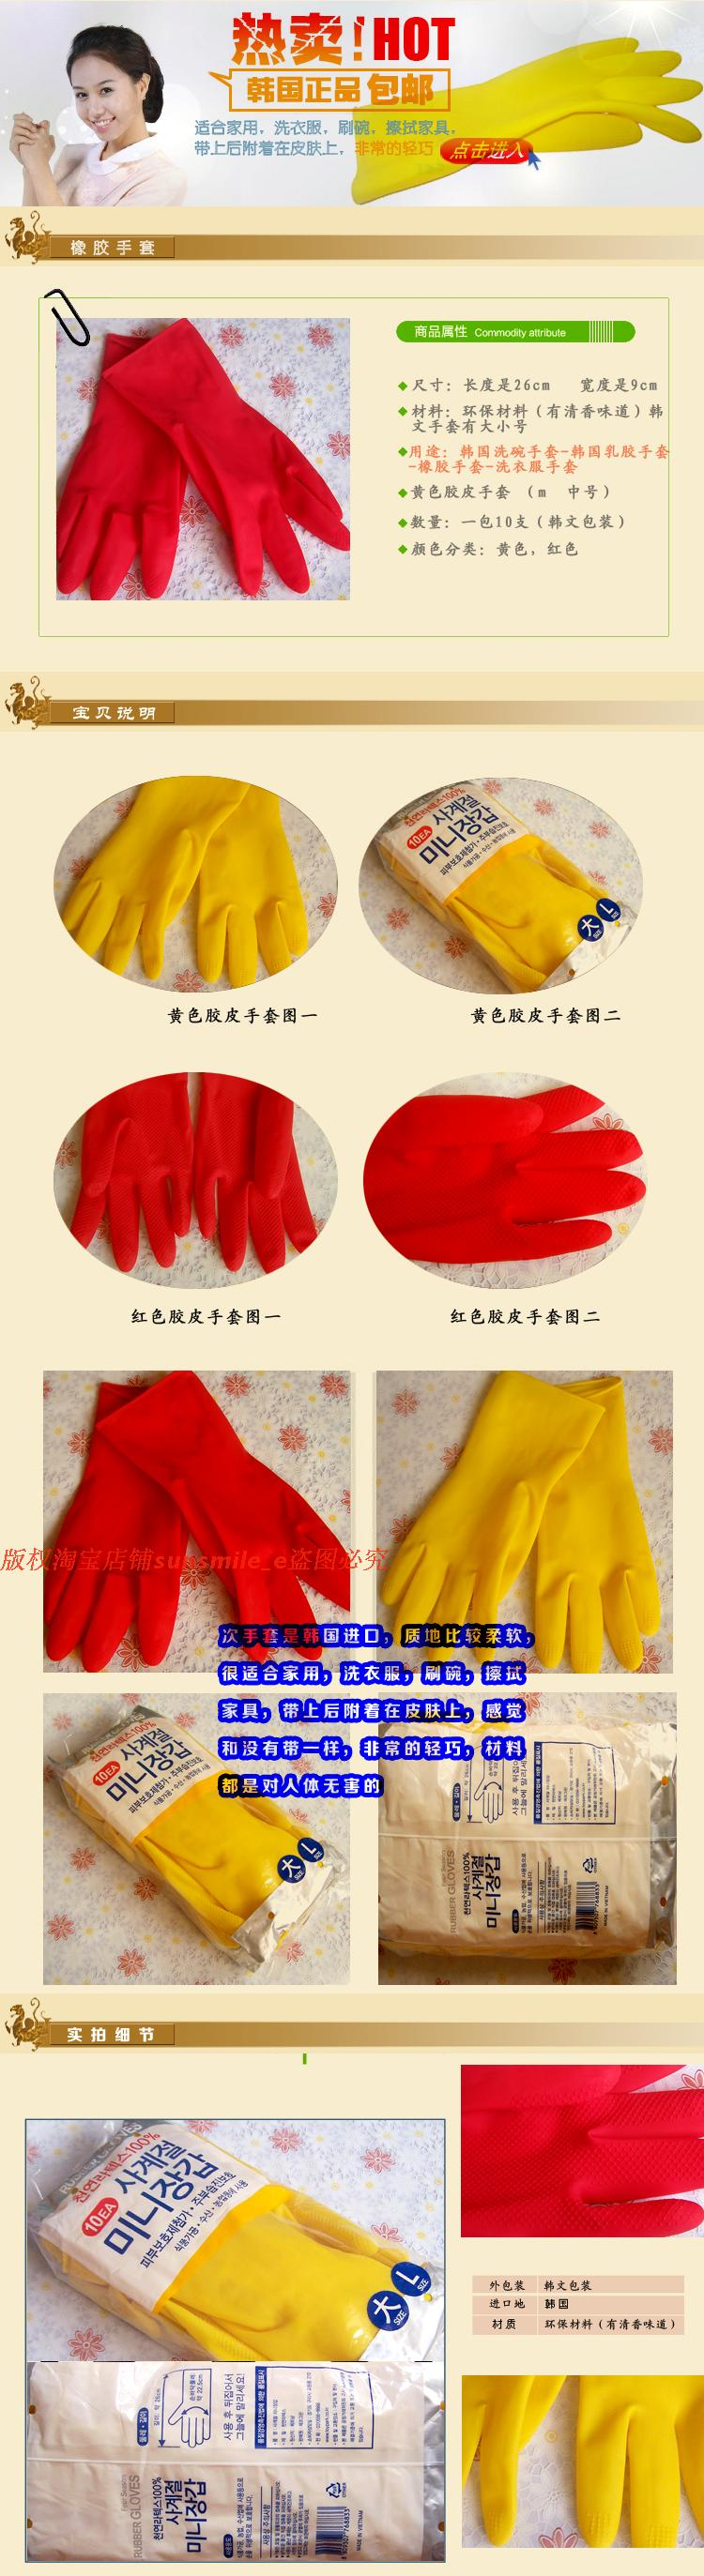 South Korean imports of gloves 8 Pair of South Korean imports of rubber gloves cleaning housework laundry dishwashing gloves light of durable non-slip latex